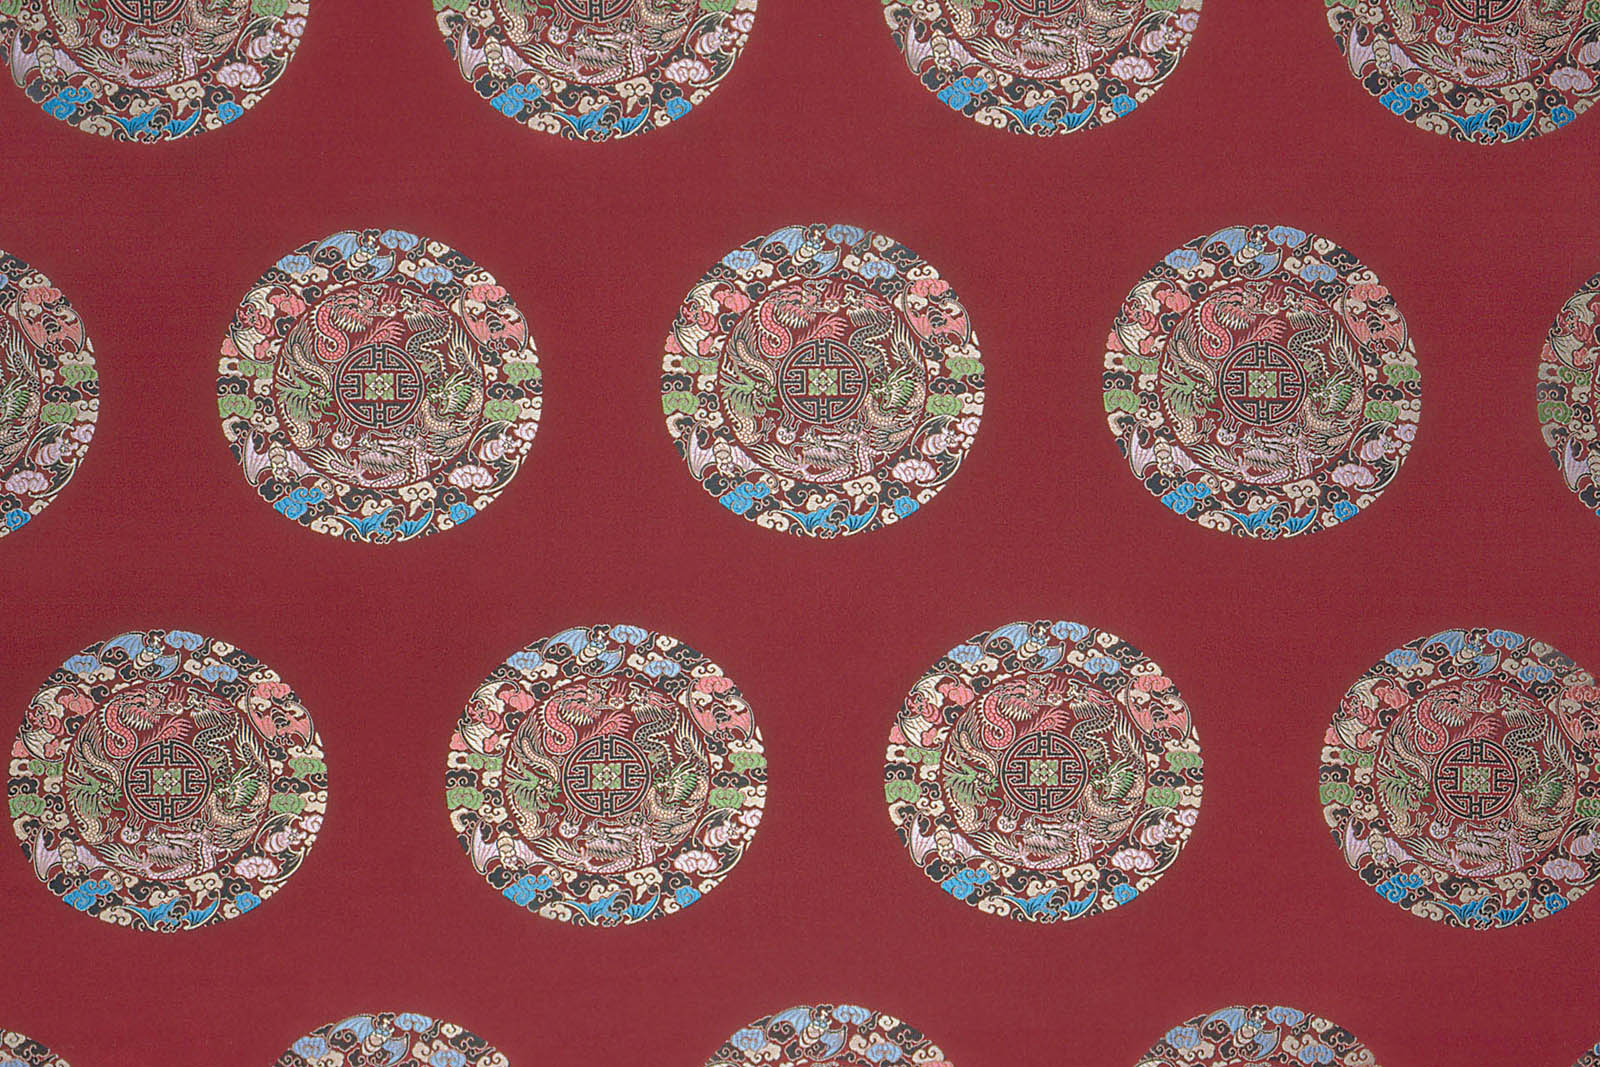 Gyrosigma background wallpaper pattern 18391